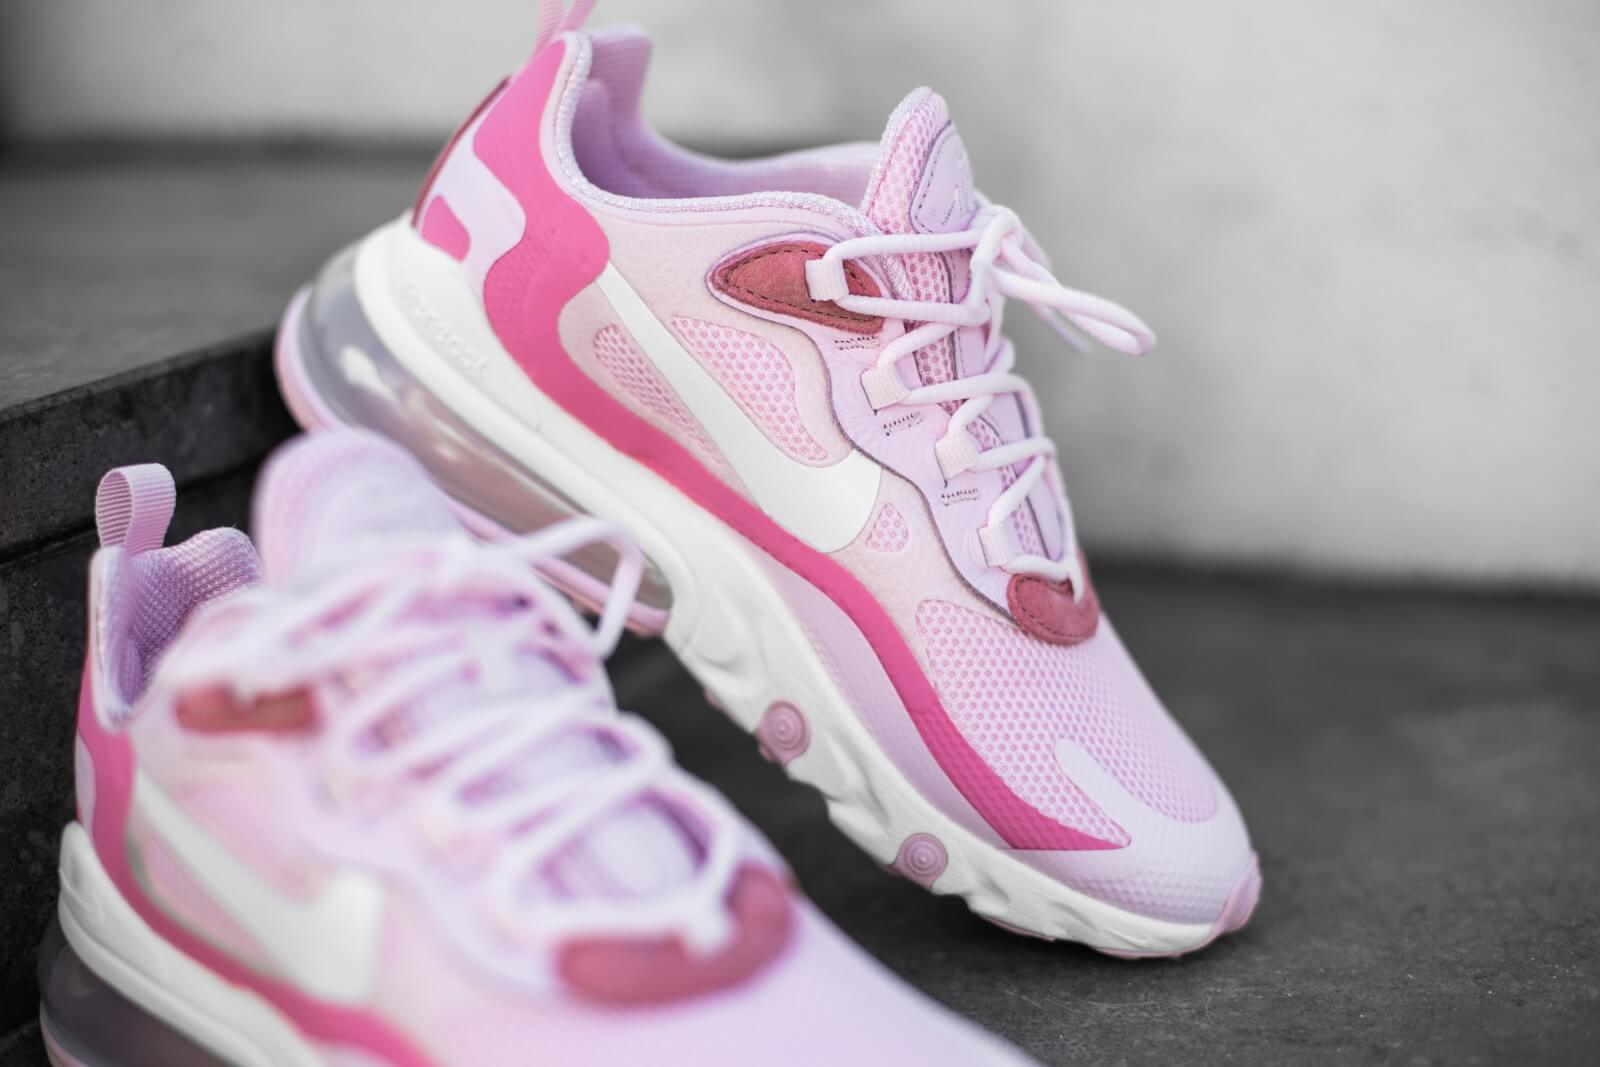 Nike Women S Air Max 270 React Pink Foam White Digital Pink